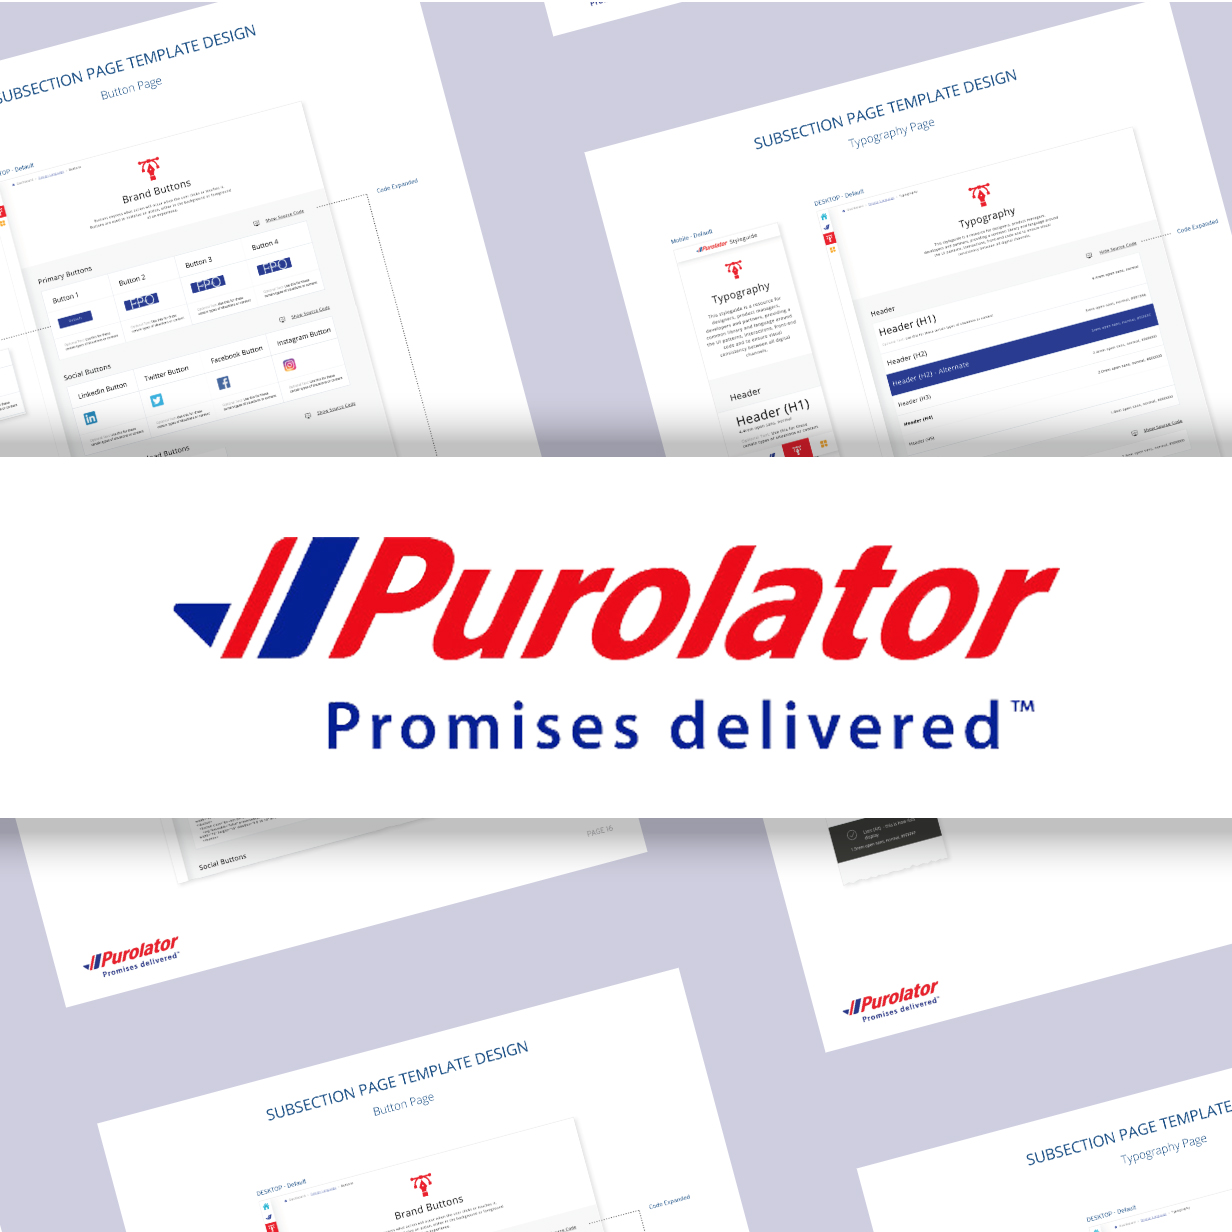 Purolator - Digital Style Guide